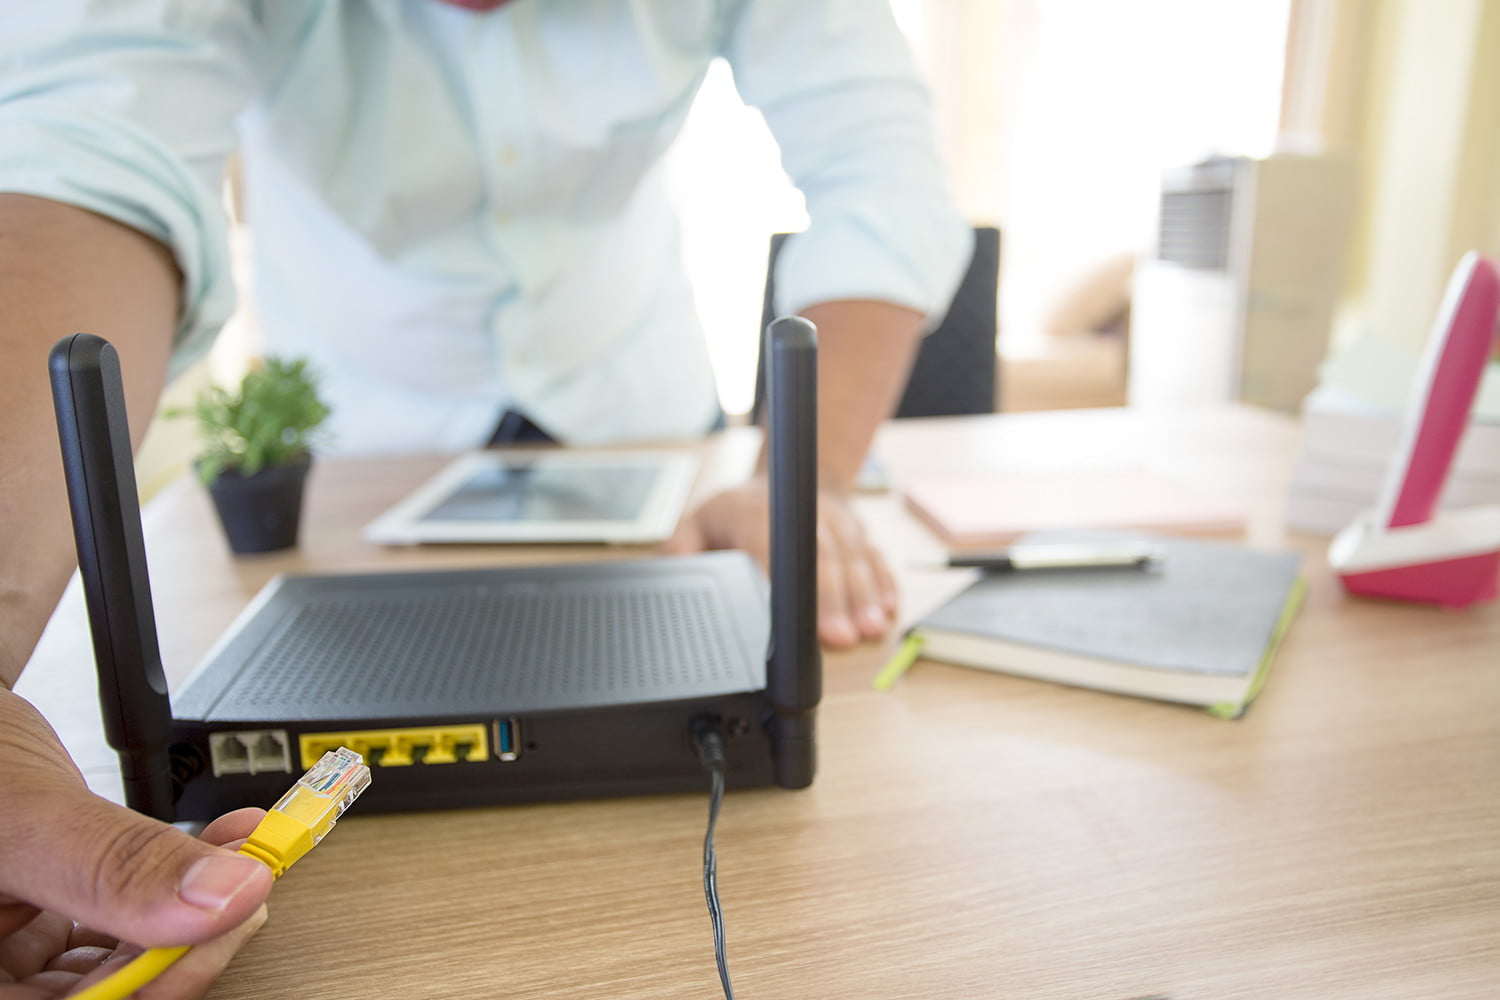 How to Find the IP Address of Your Router | Digital Trends